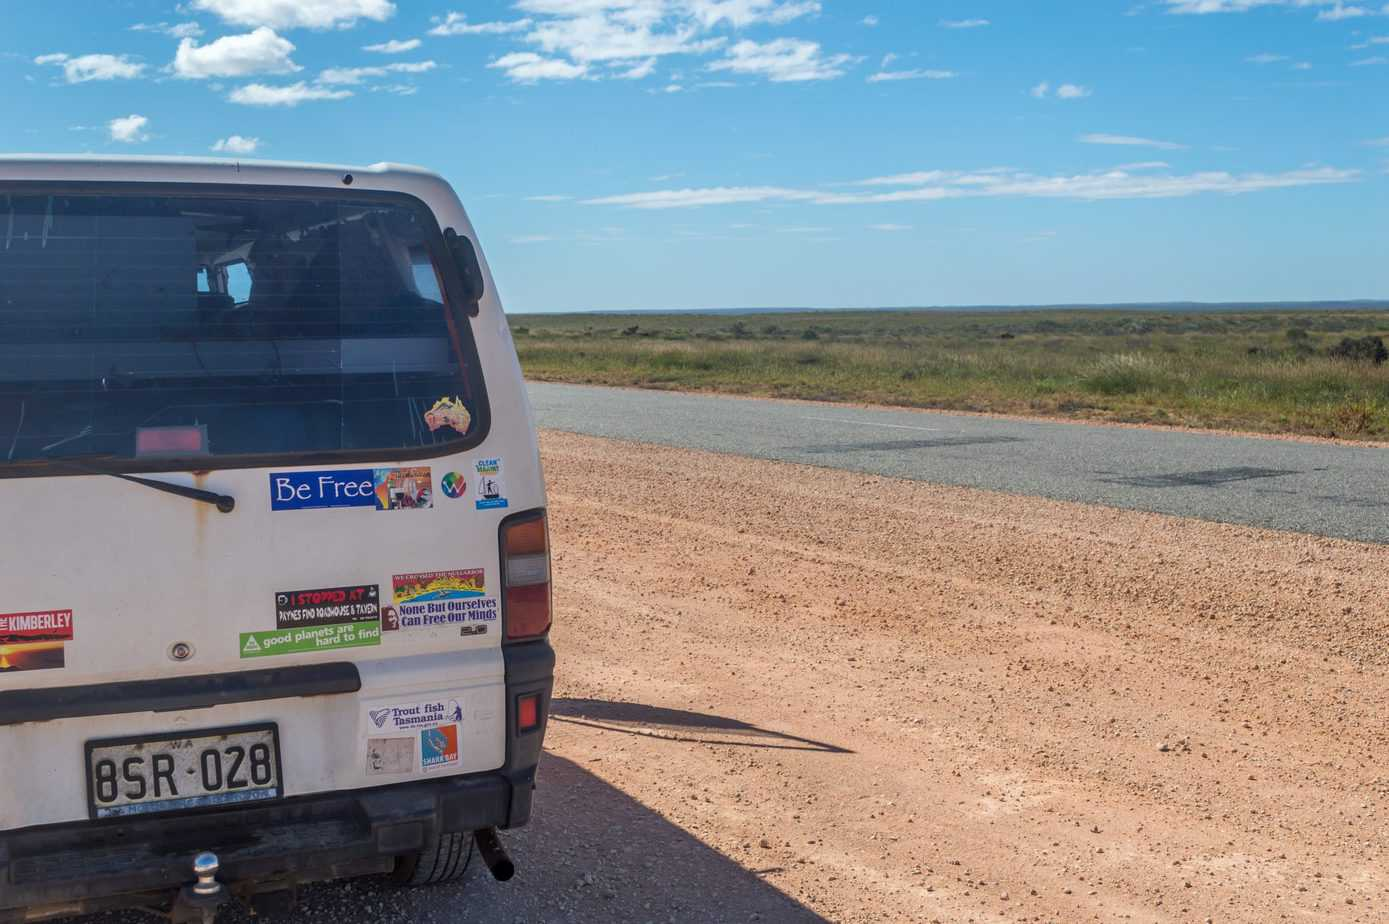 western australia road trip itinerary - campervan on highway